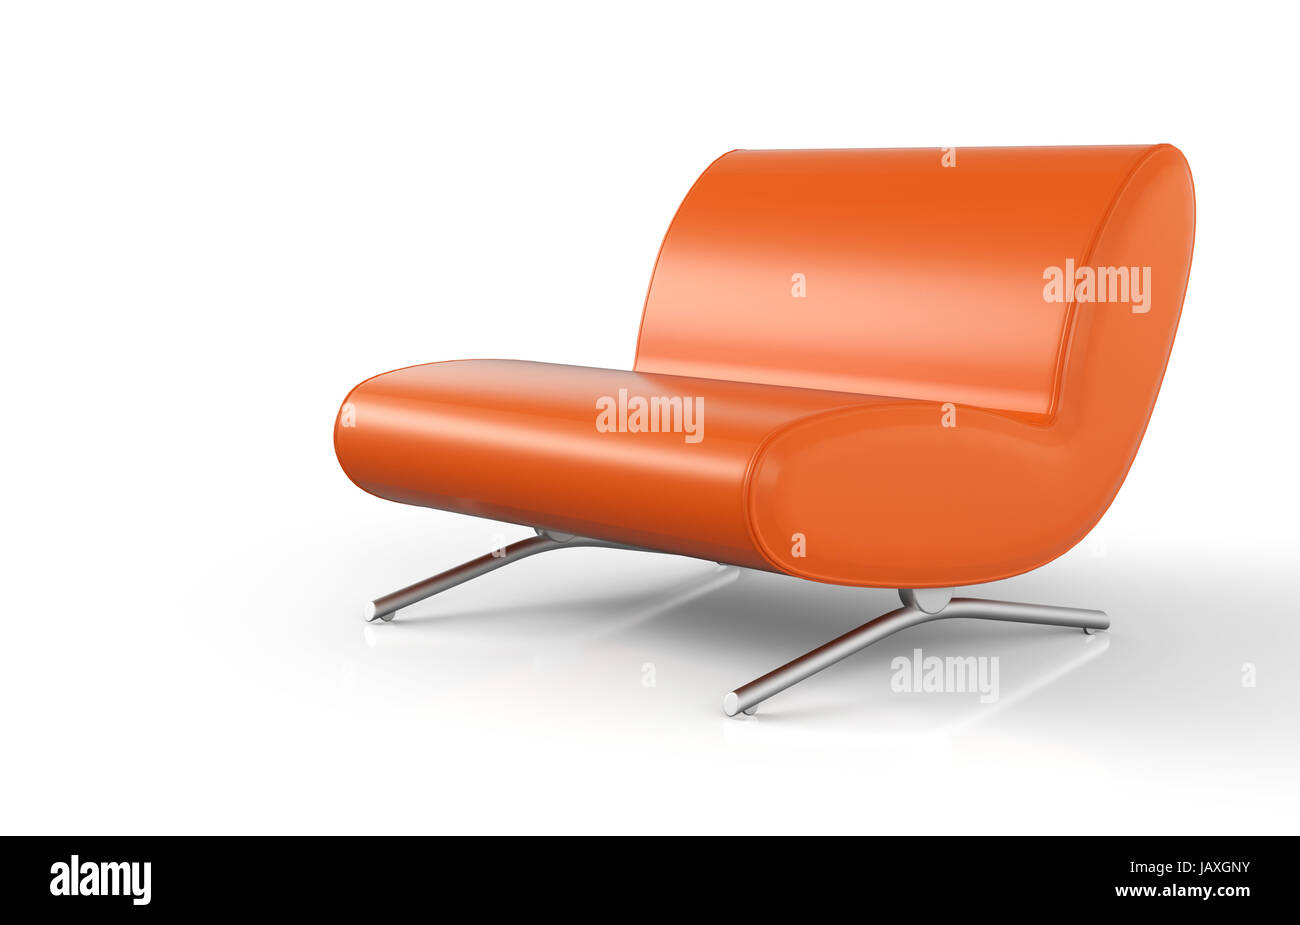 Designer Sessel Orange Ergonomischer Designer Sessel Orange Stock Photo 144413415 Alamy